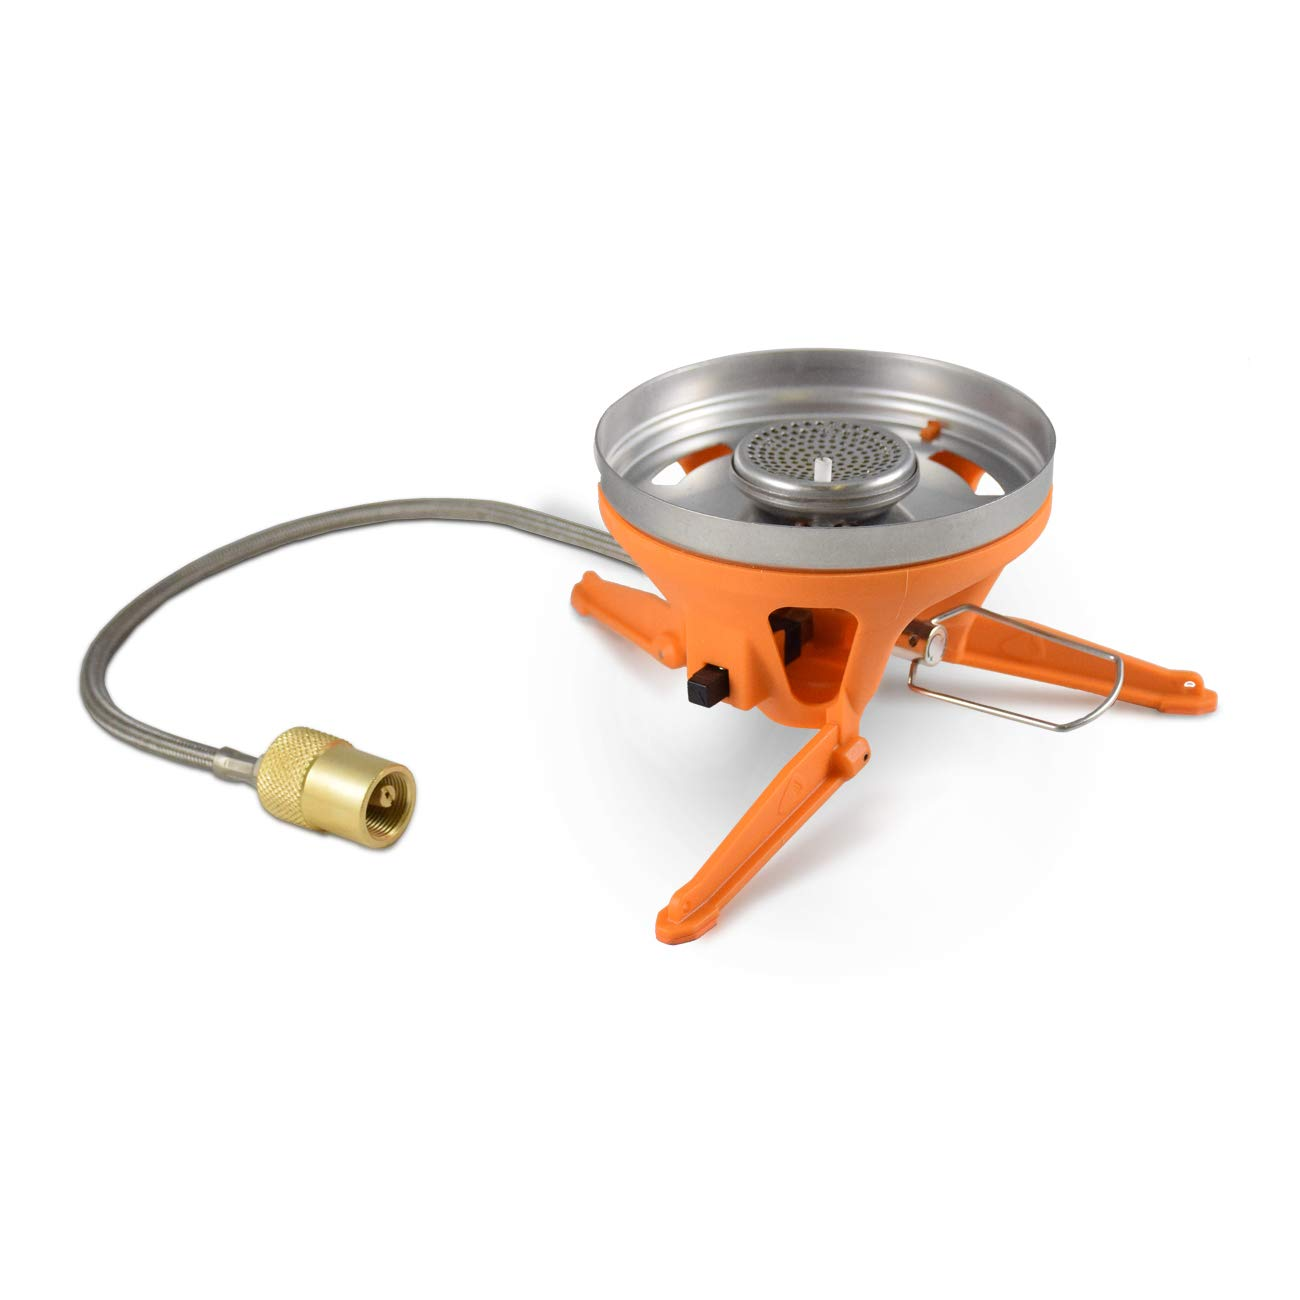 Jetboil Luna Satellite Side Burner for Jetboil or Eureka! Camping Stoves